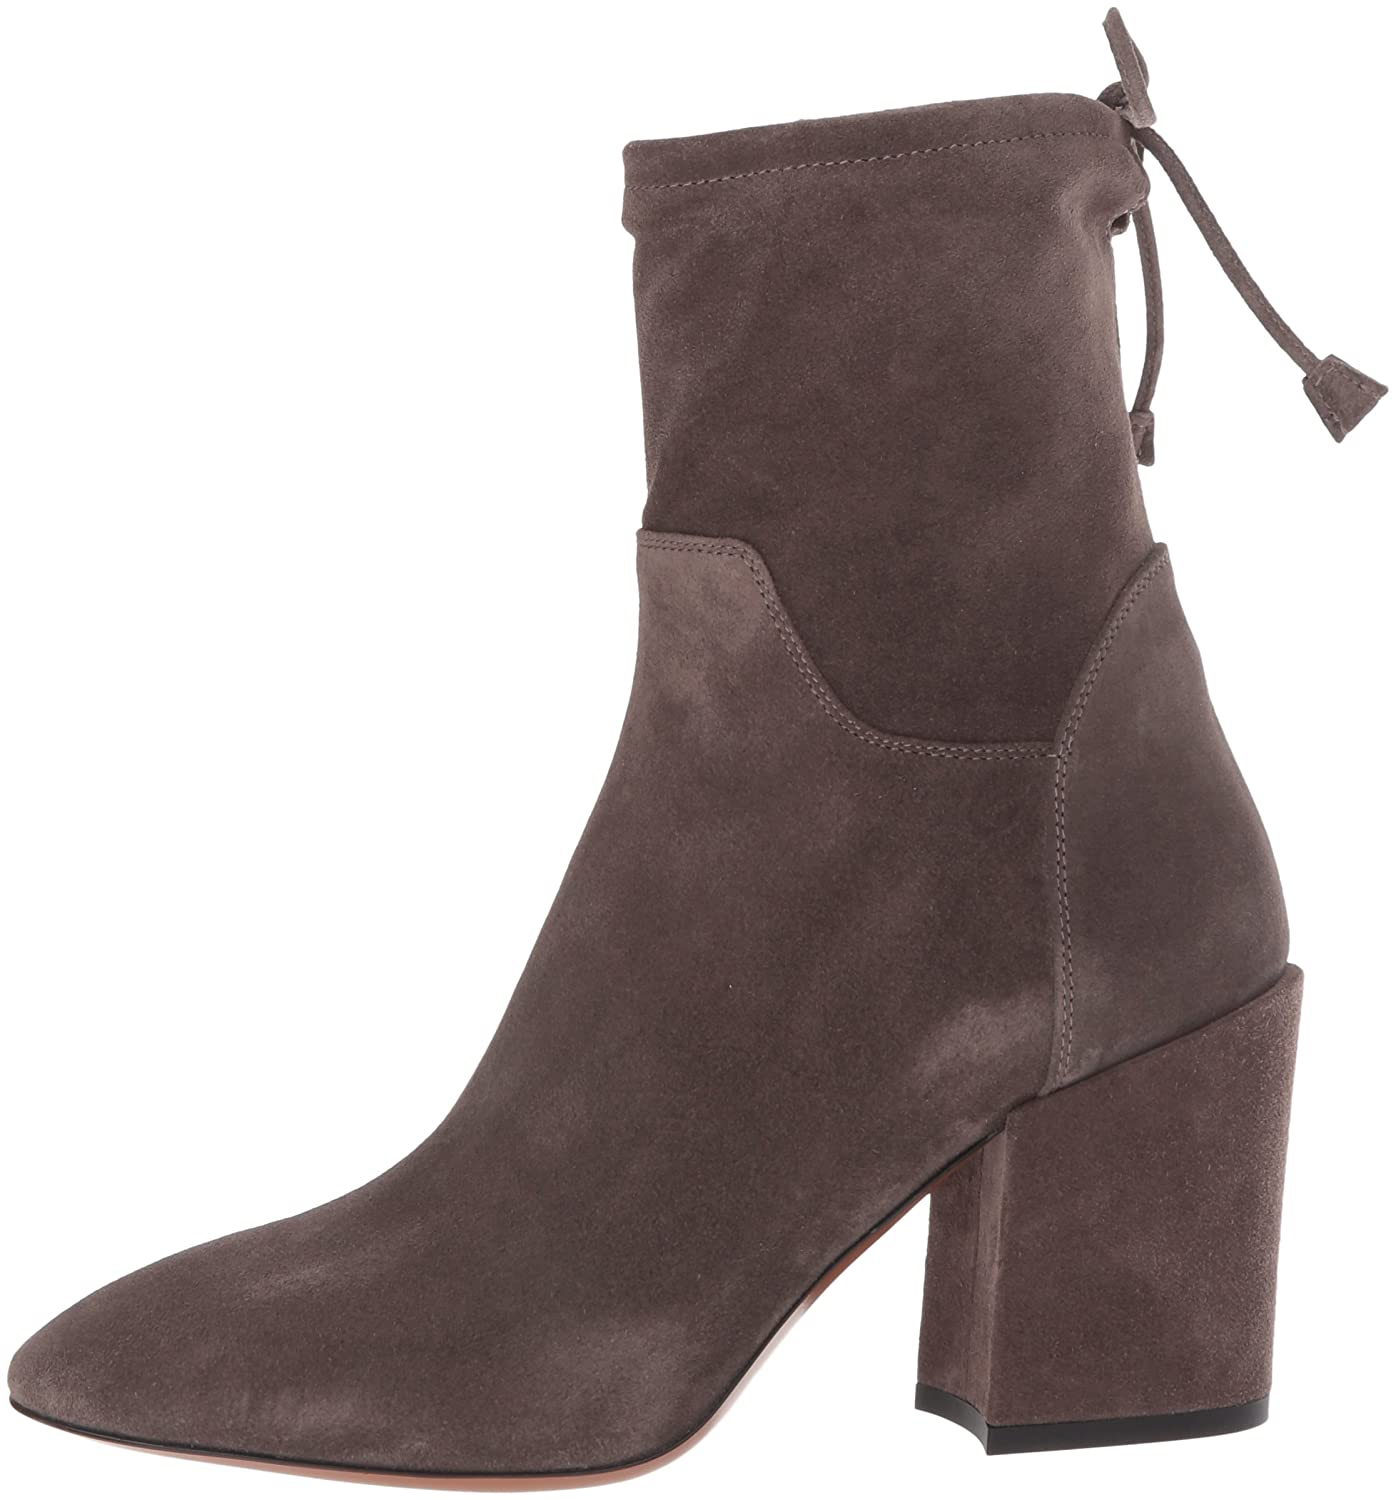 Aquatalia Women's Floria Suede Ankle Boot B06W2K59N5 7 B(M) US|Anthracite